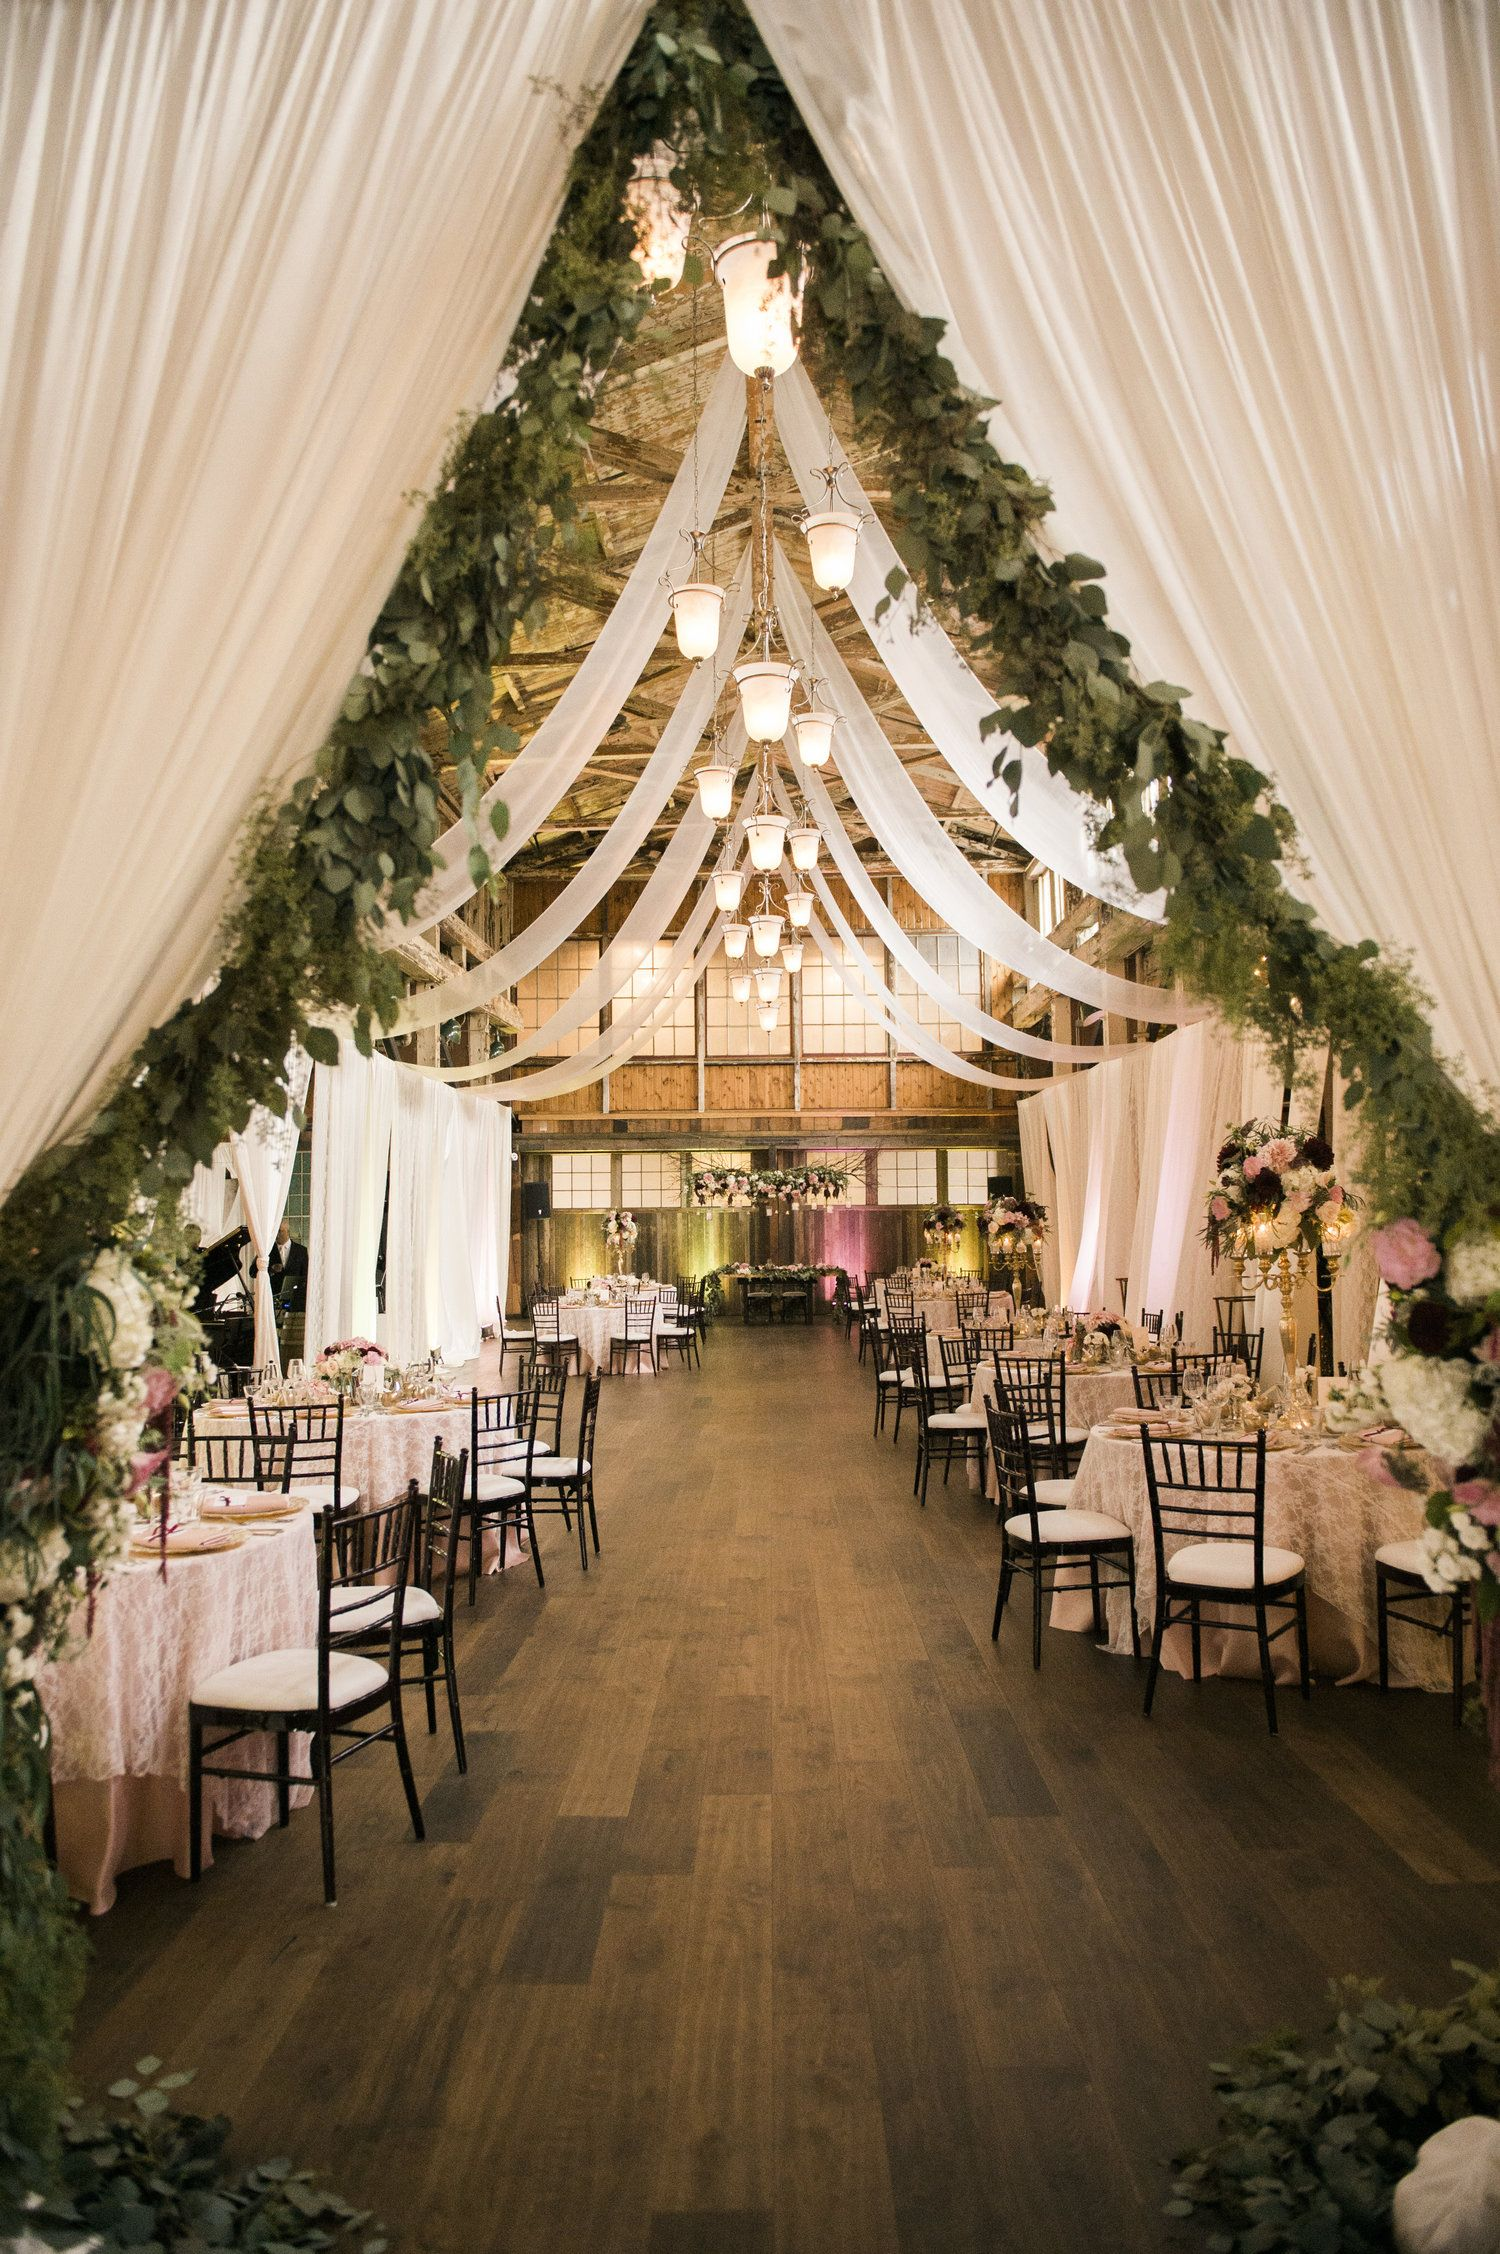 A Romantic Sodo Park Seattle Wedding The Overwhelmed Bride Wedding Blog Socal Wedding Planner Rustic Barn Wedding Decorations Barn Wedding Reception Barn Wedding Reception Decorations